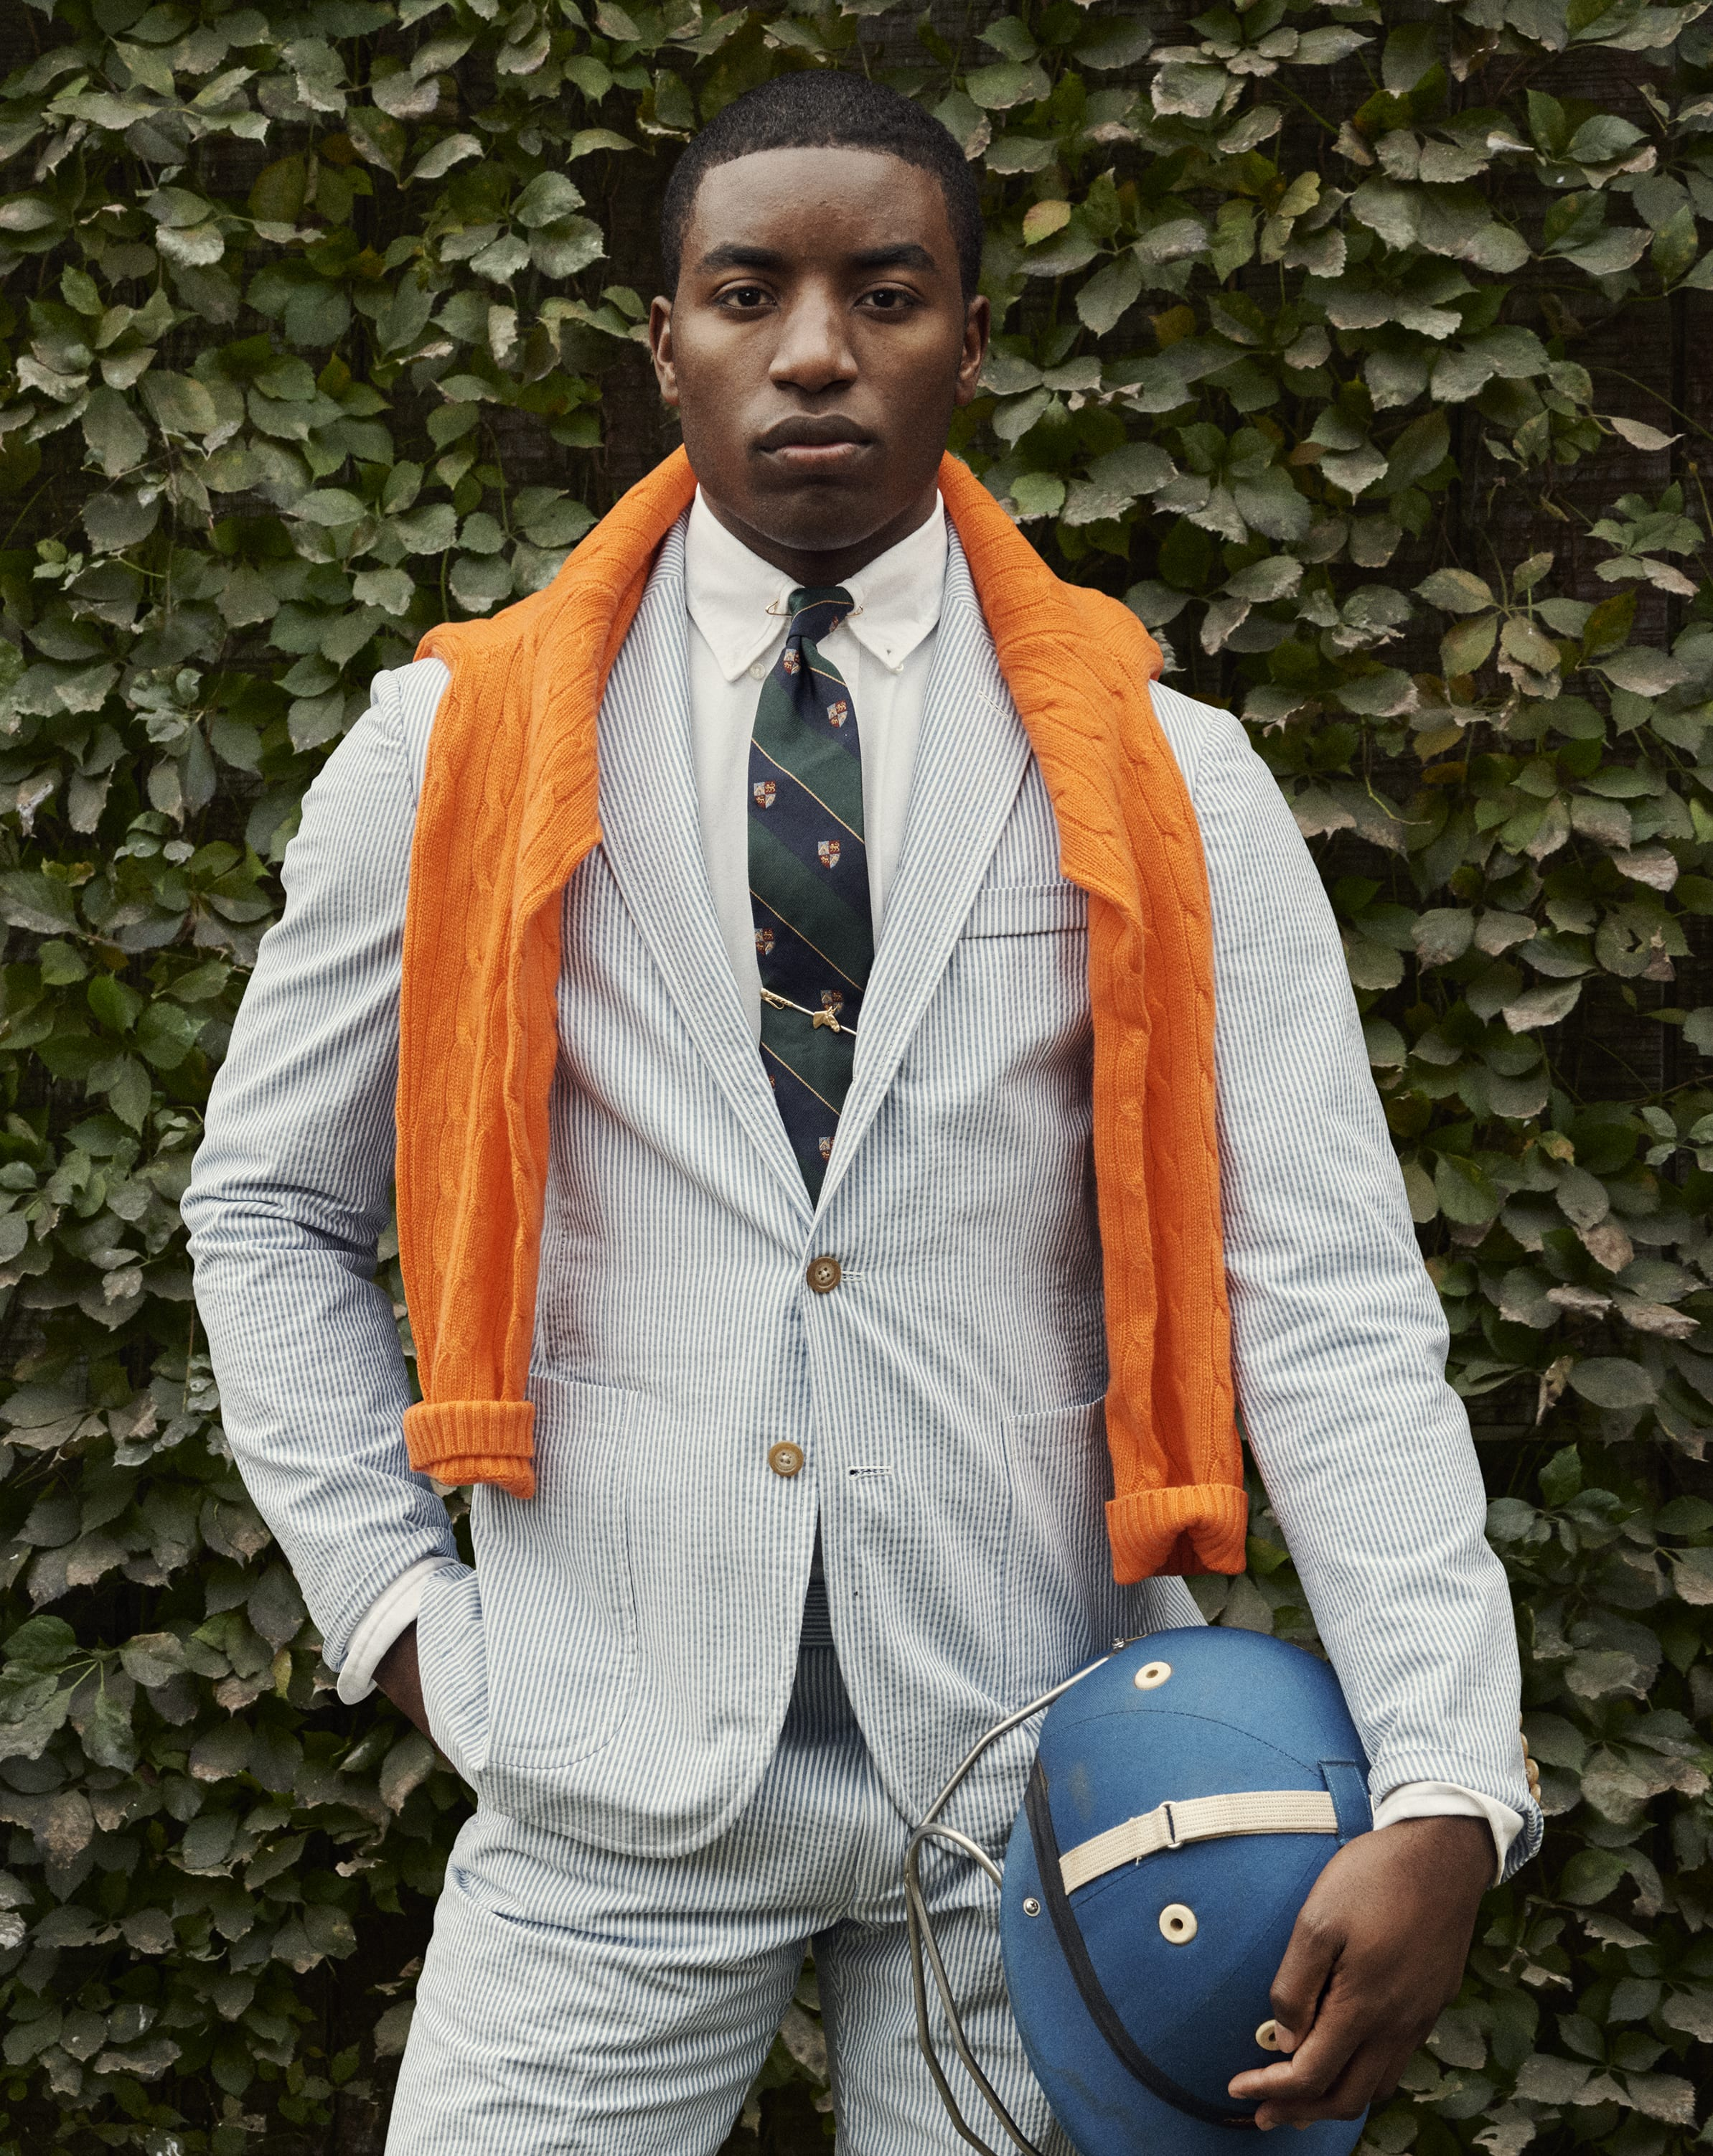 Kareem Rosser by Sharif Hamza for Ralph Lauren Polo.